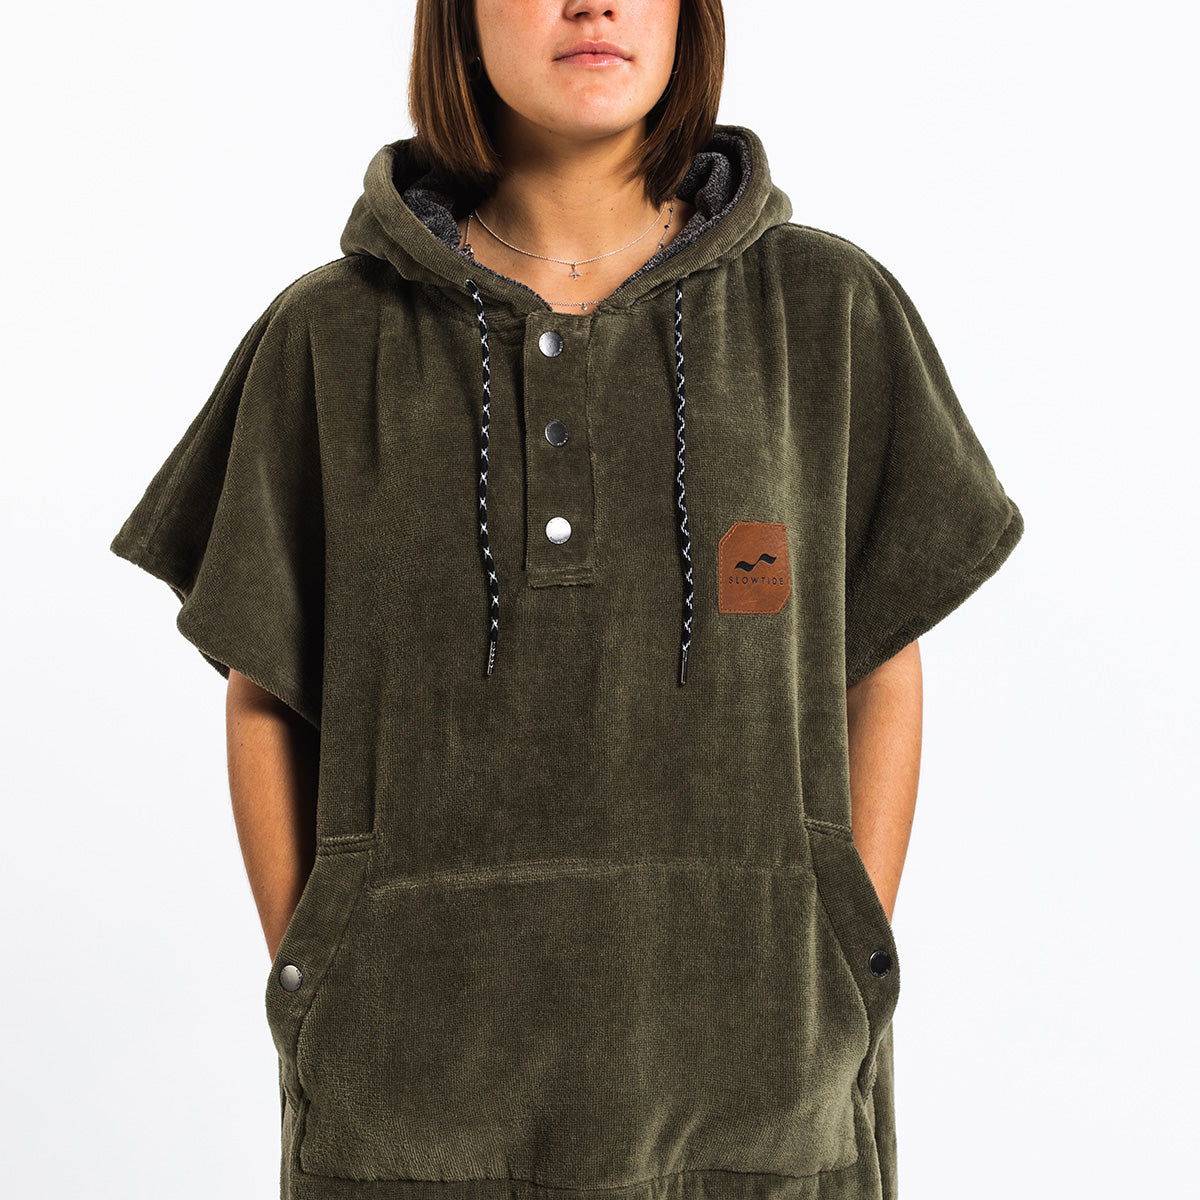 The Digs Changing Poncho - Green - Small - Slowtide